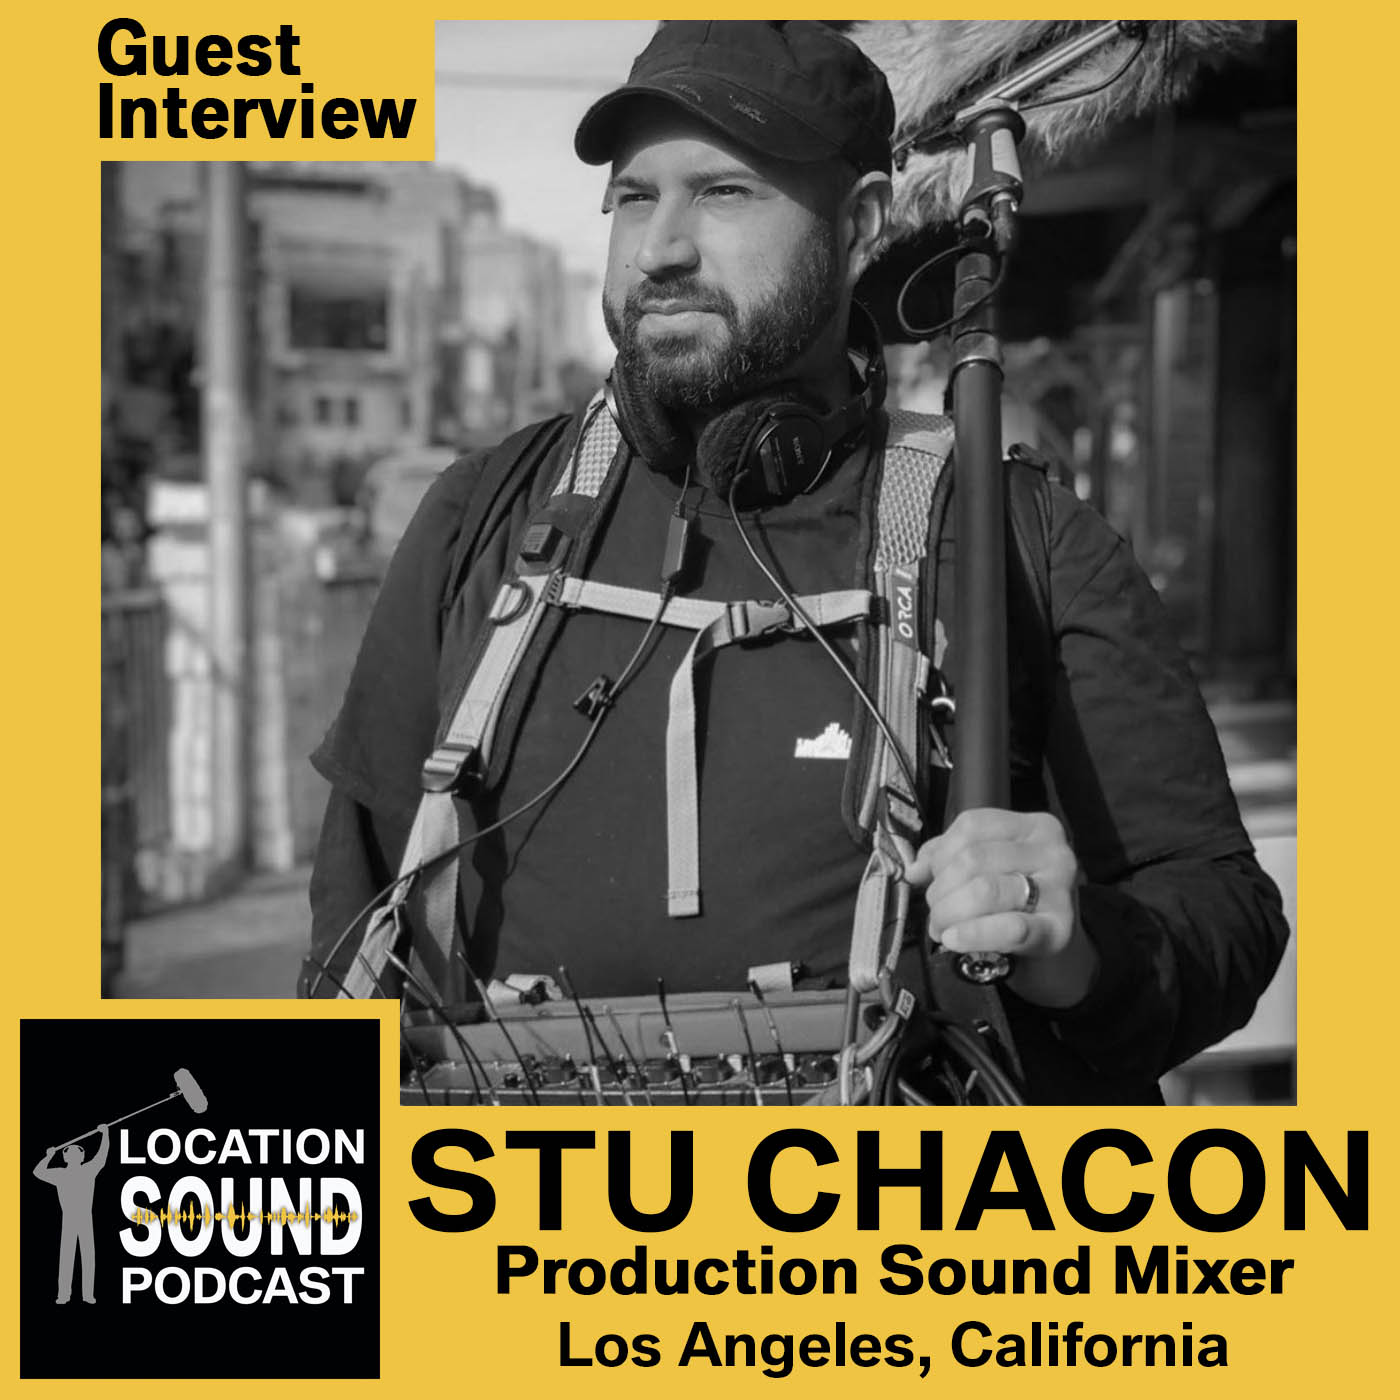 073 Stu Chacon - Production Sound Mixer based out of Los Angeles, California